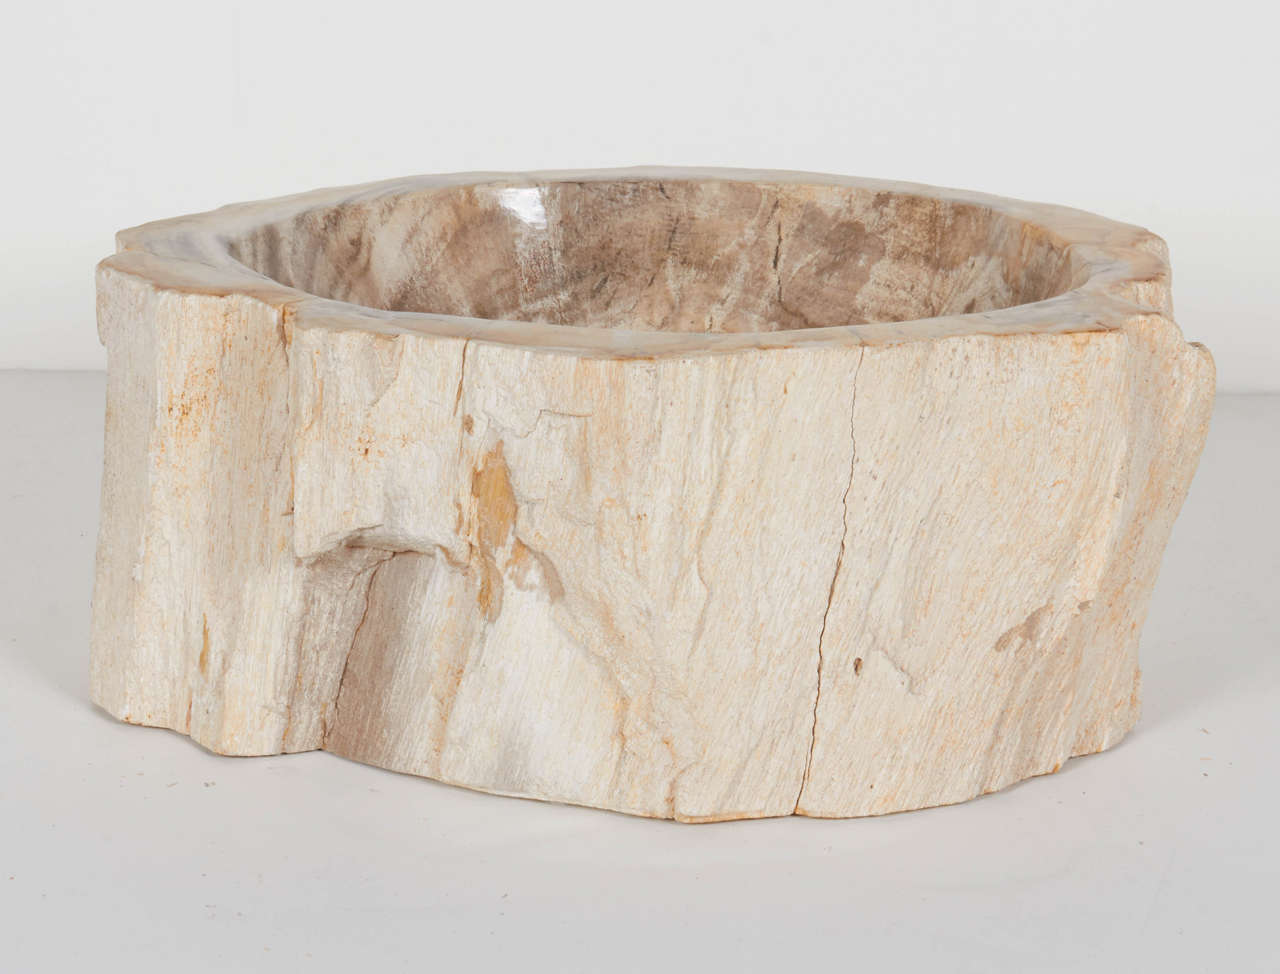 ... Rare Organic Petrified Wood Large Bowl or Sink is no longer available